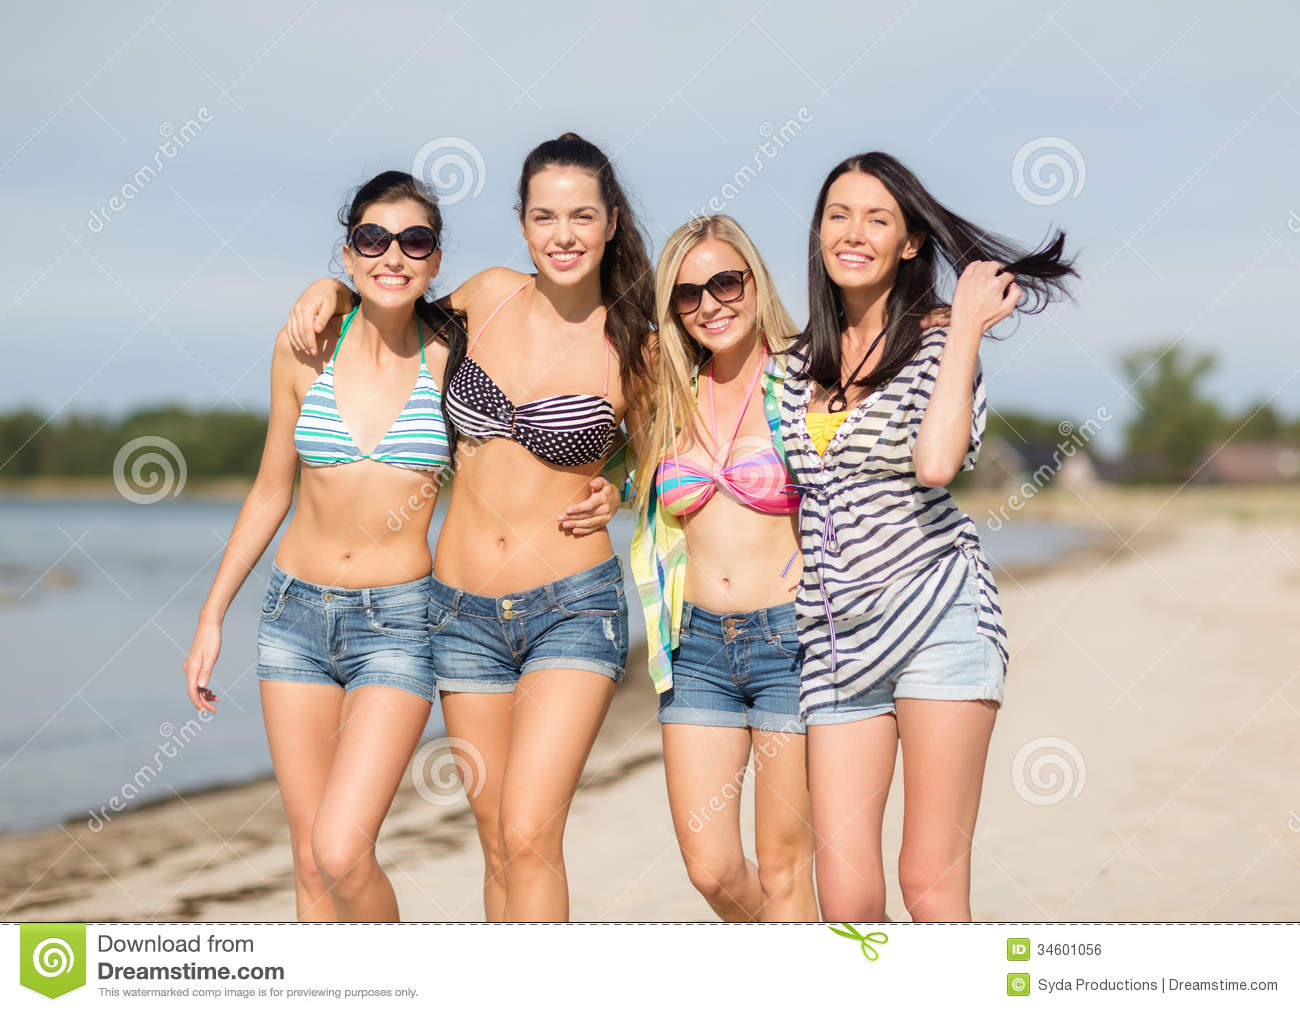 Gals walking in bikini